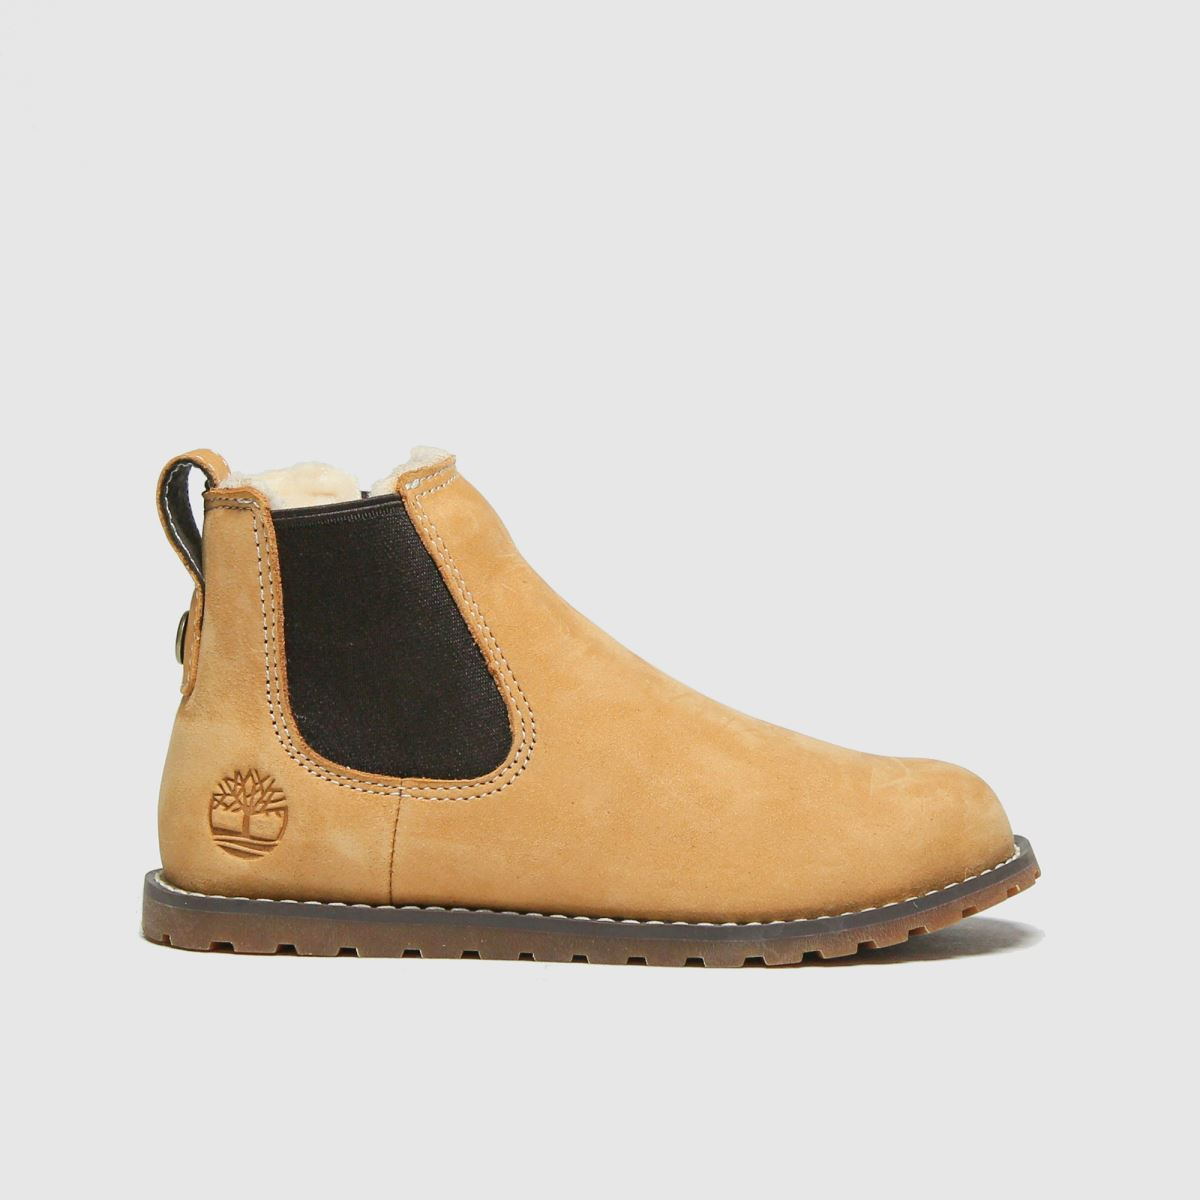 Timberland Natural Pokey Pine Chelsea Boots Toddler